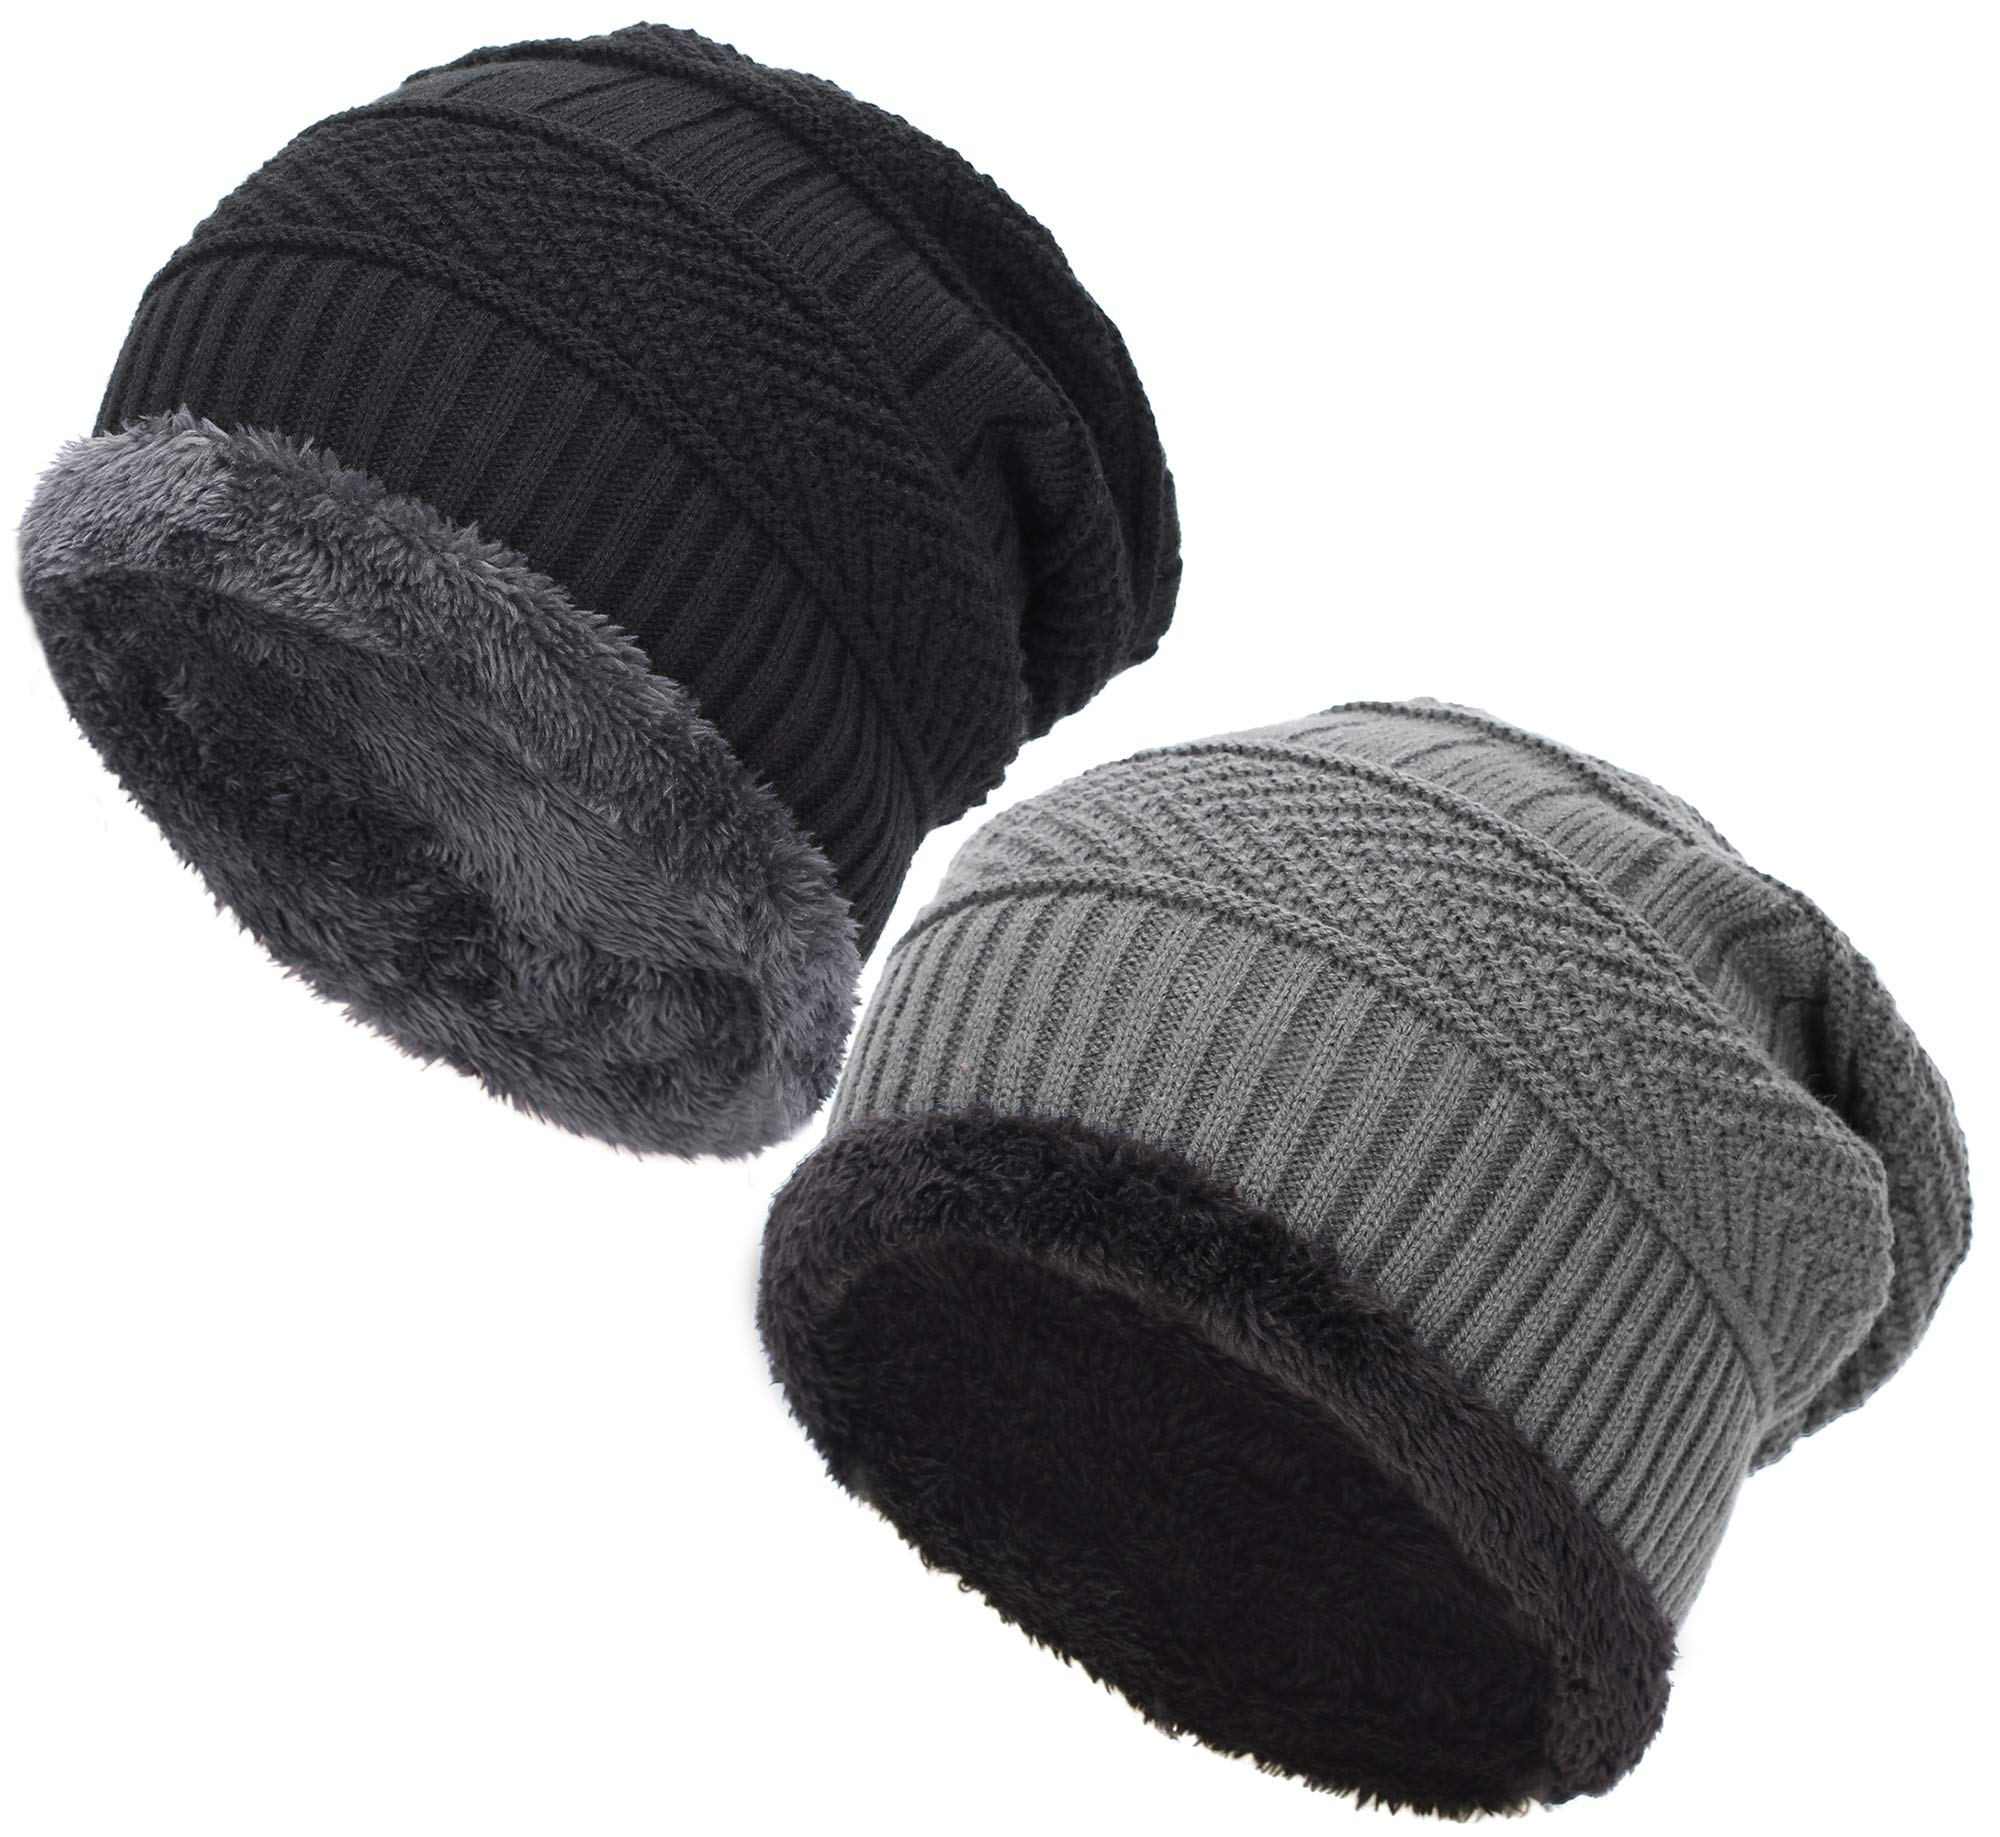 EASTER BARTHE Classic Men's Thick Warm Winter Fleece Lining Knit Beanie Hat Baggy Oversize Slouchy Stocking Beanie Hat Skull Cap for Men (2 Pack:1-Black & 1-Grey (Without Label))